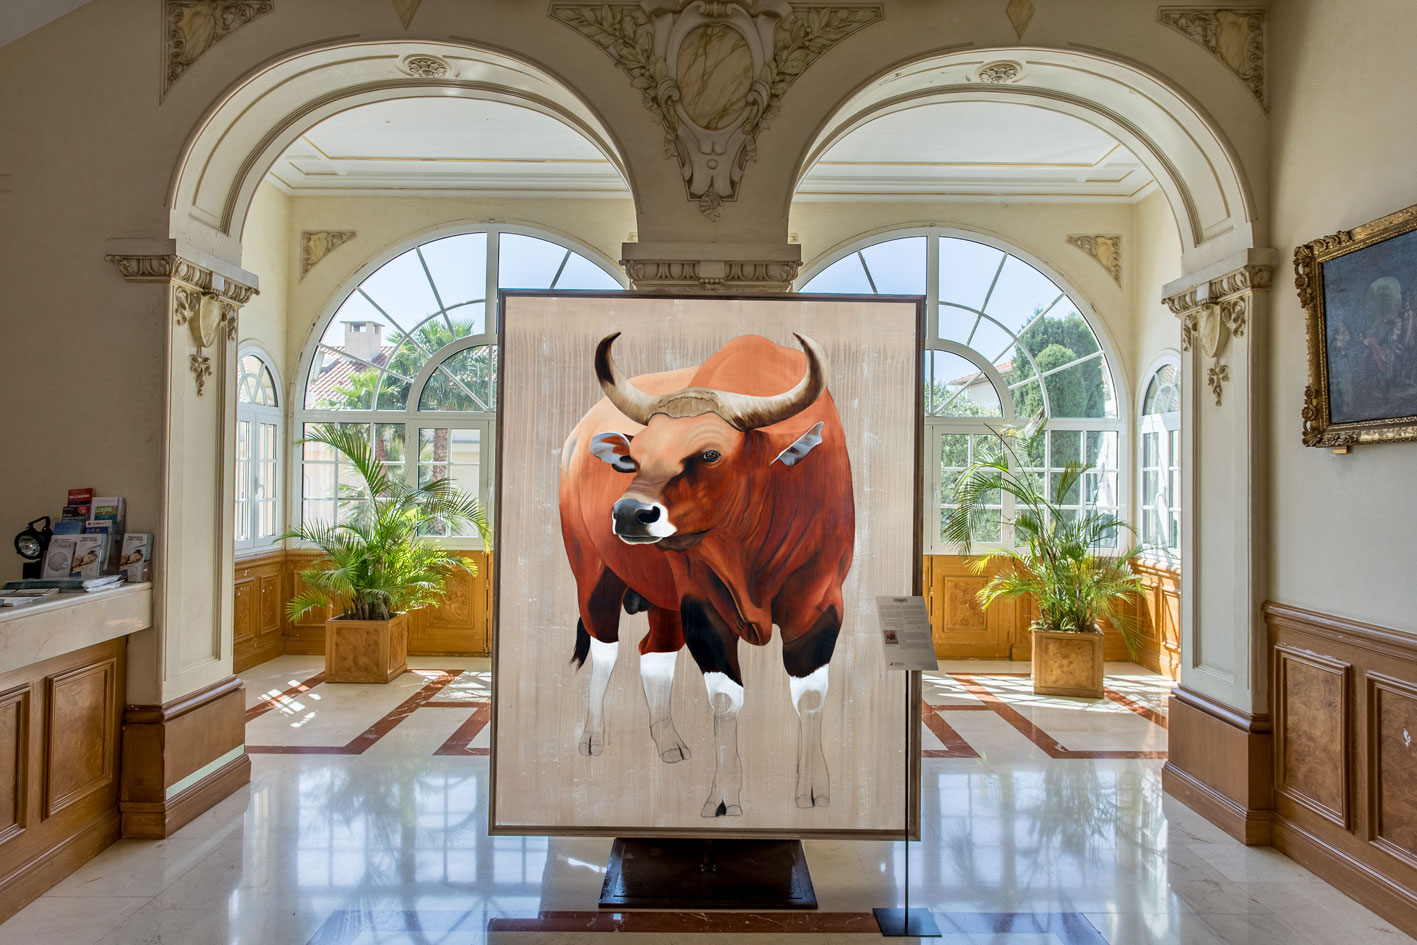 MAIRIE DE MONACO banteng%20bos%20javanicus%20asian%20red%20bull%20threatened%20endangered%20extinction Thierry Bisch painter animals painting art decoration hotel design interior luxury nature biodiversity conservation